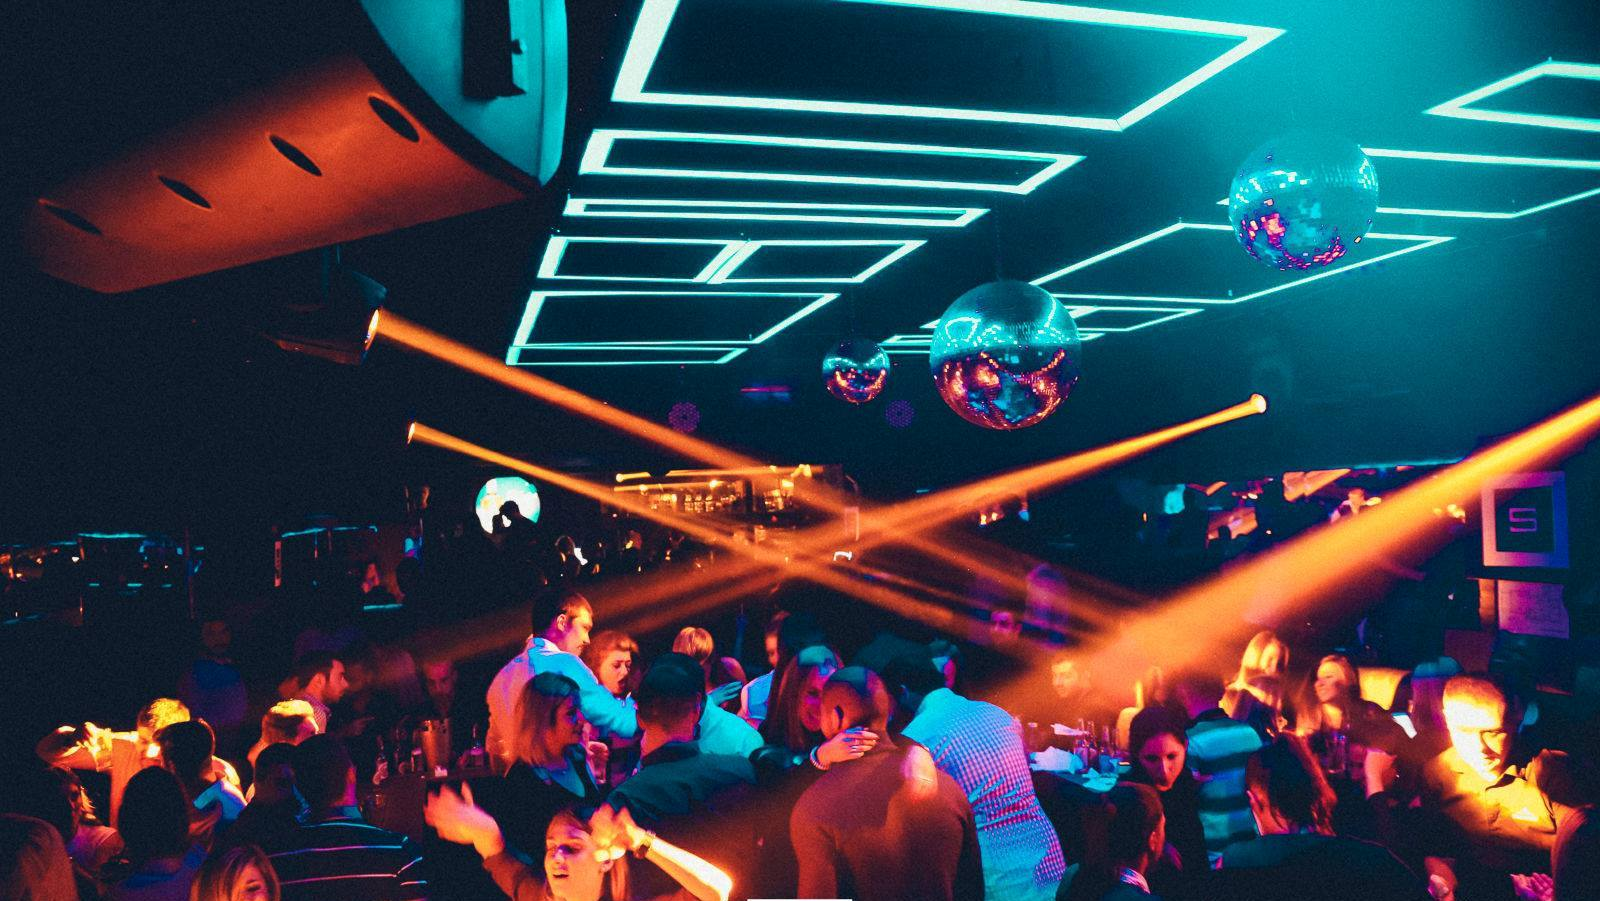 Grand opening of season No. 2 for Square club | Belgrade at night